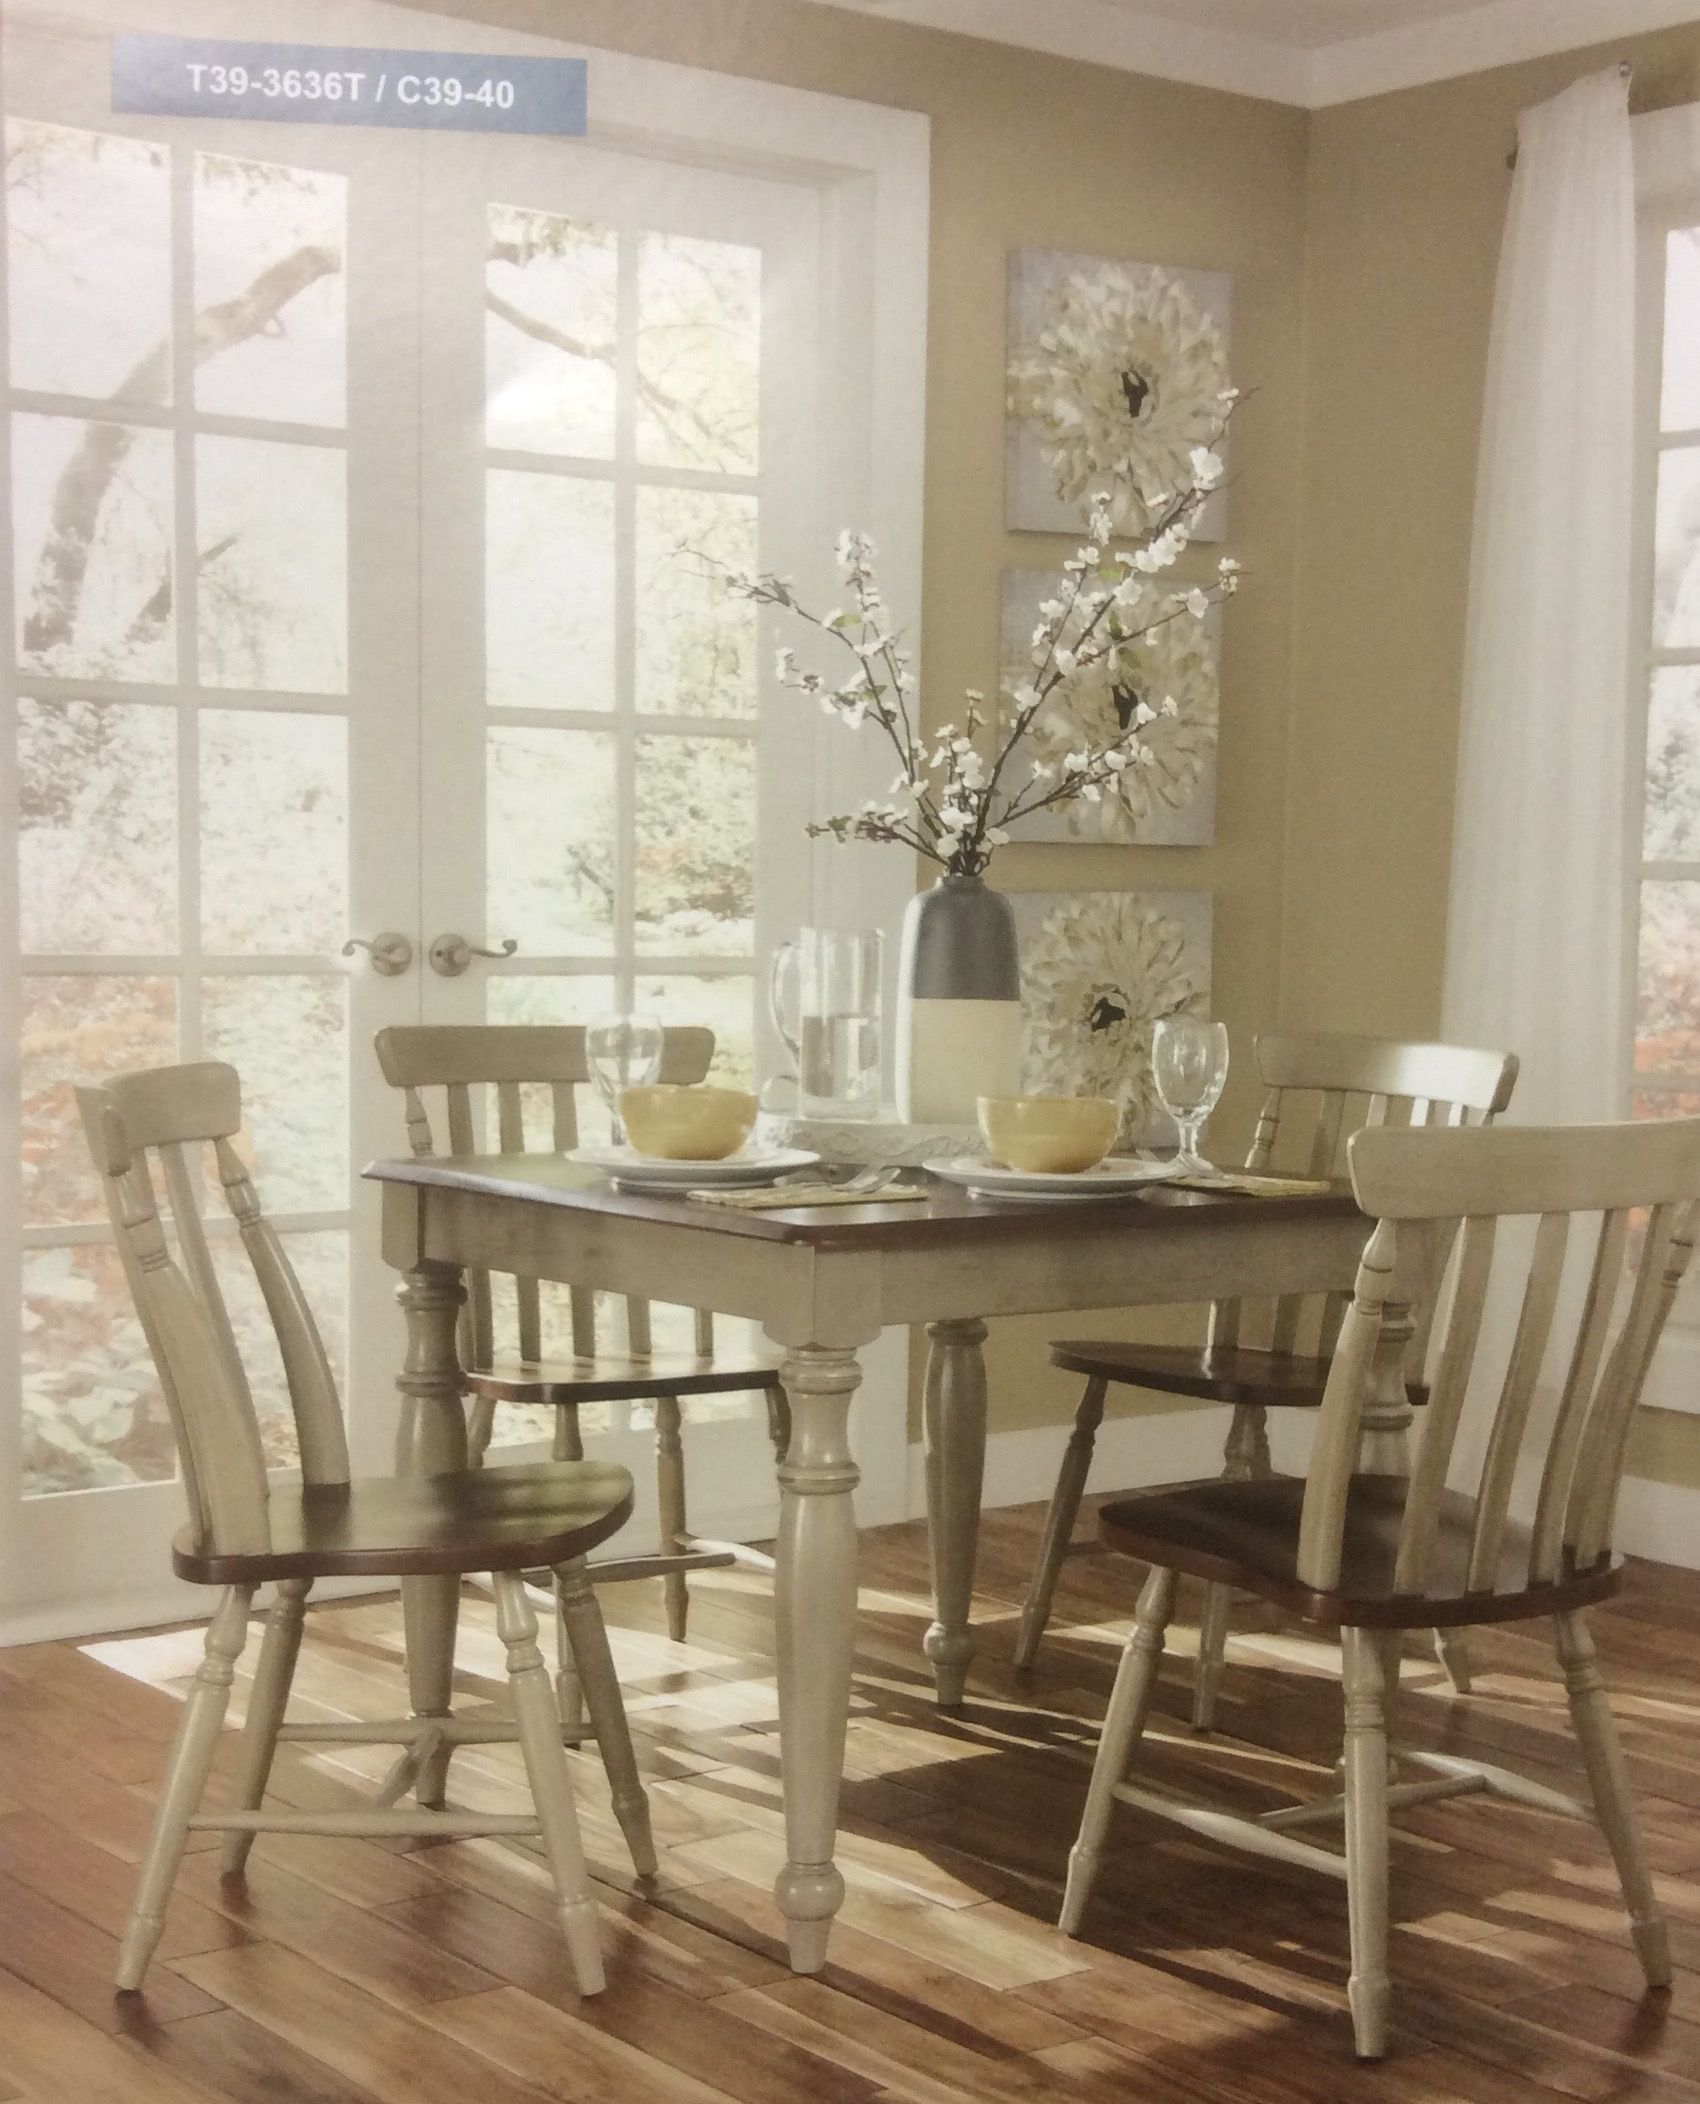 Explore Kitchen Sets High Point And More SetsHigh PointDining Table